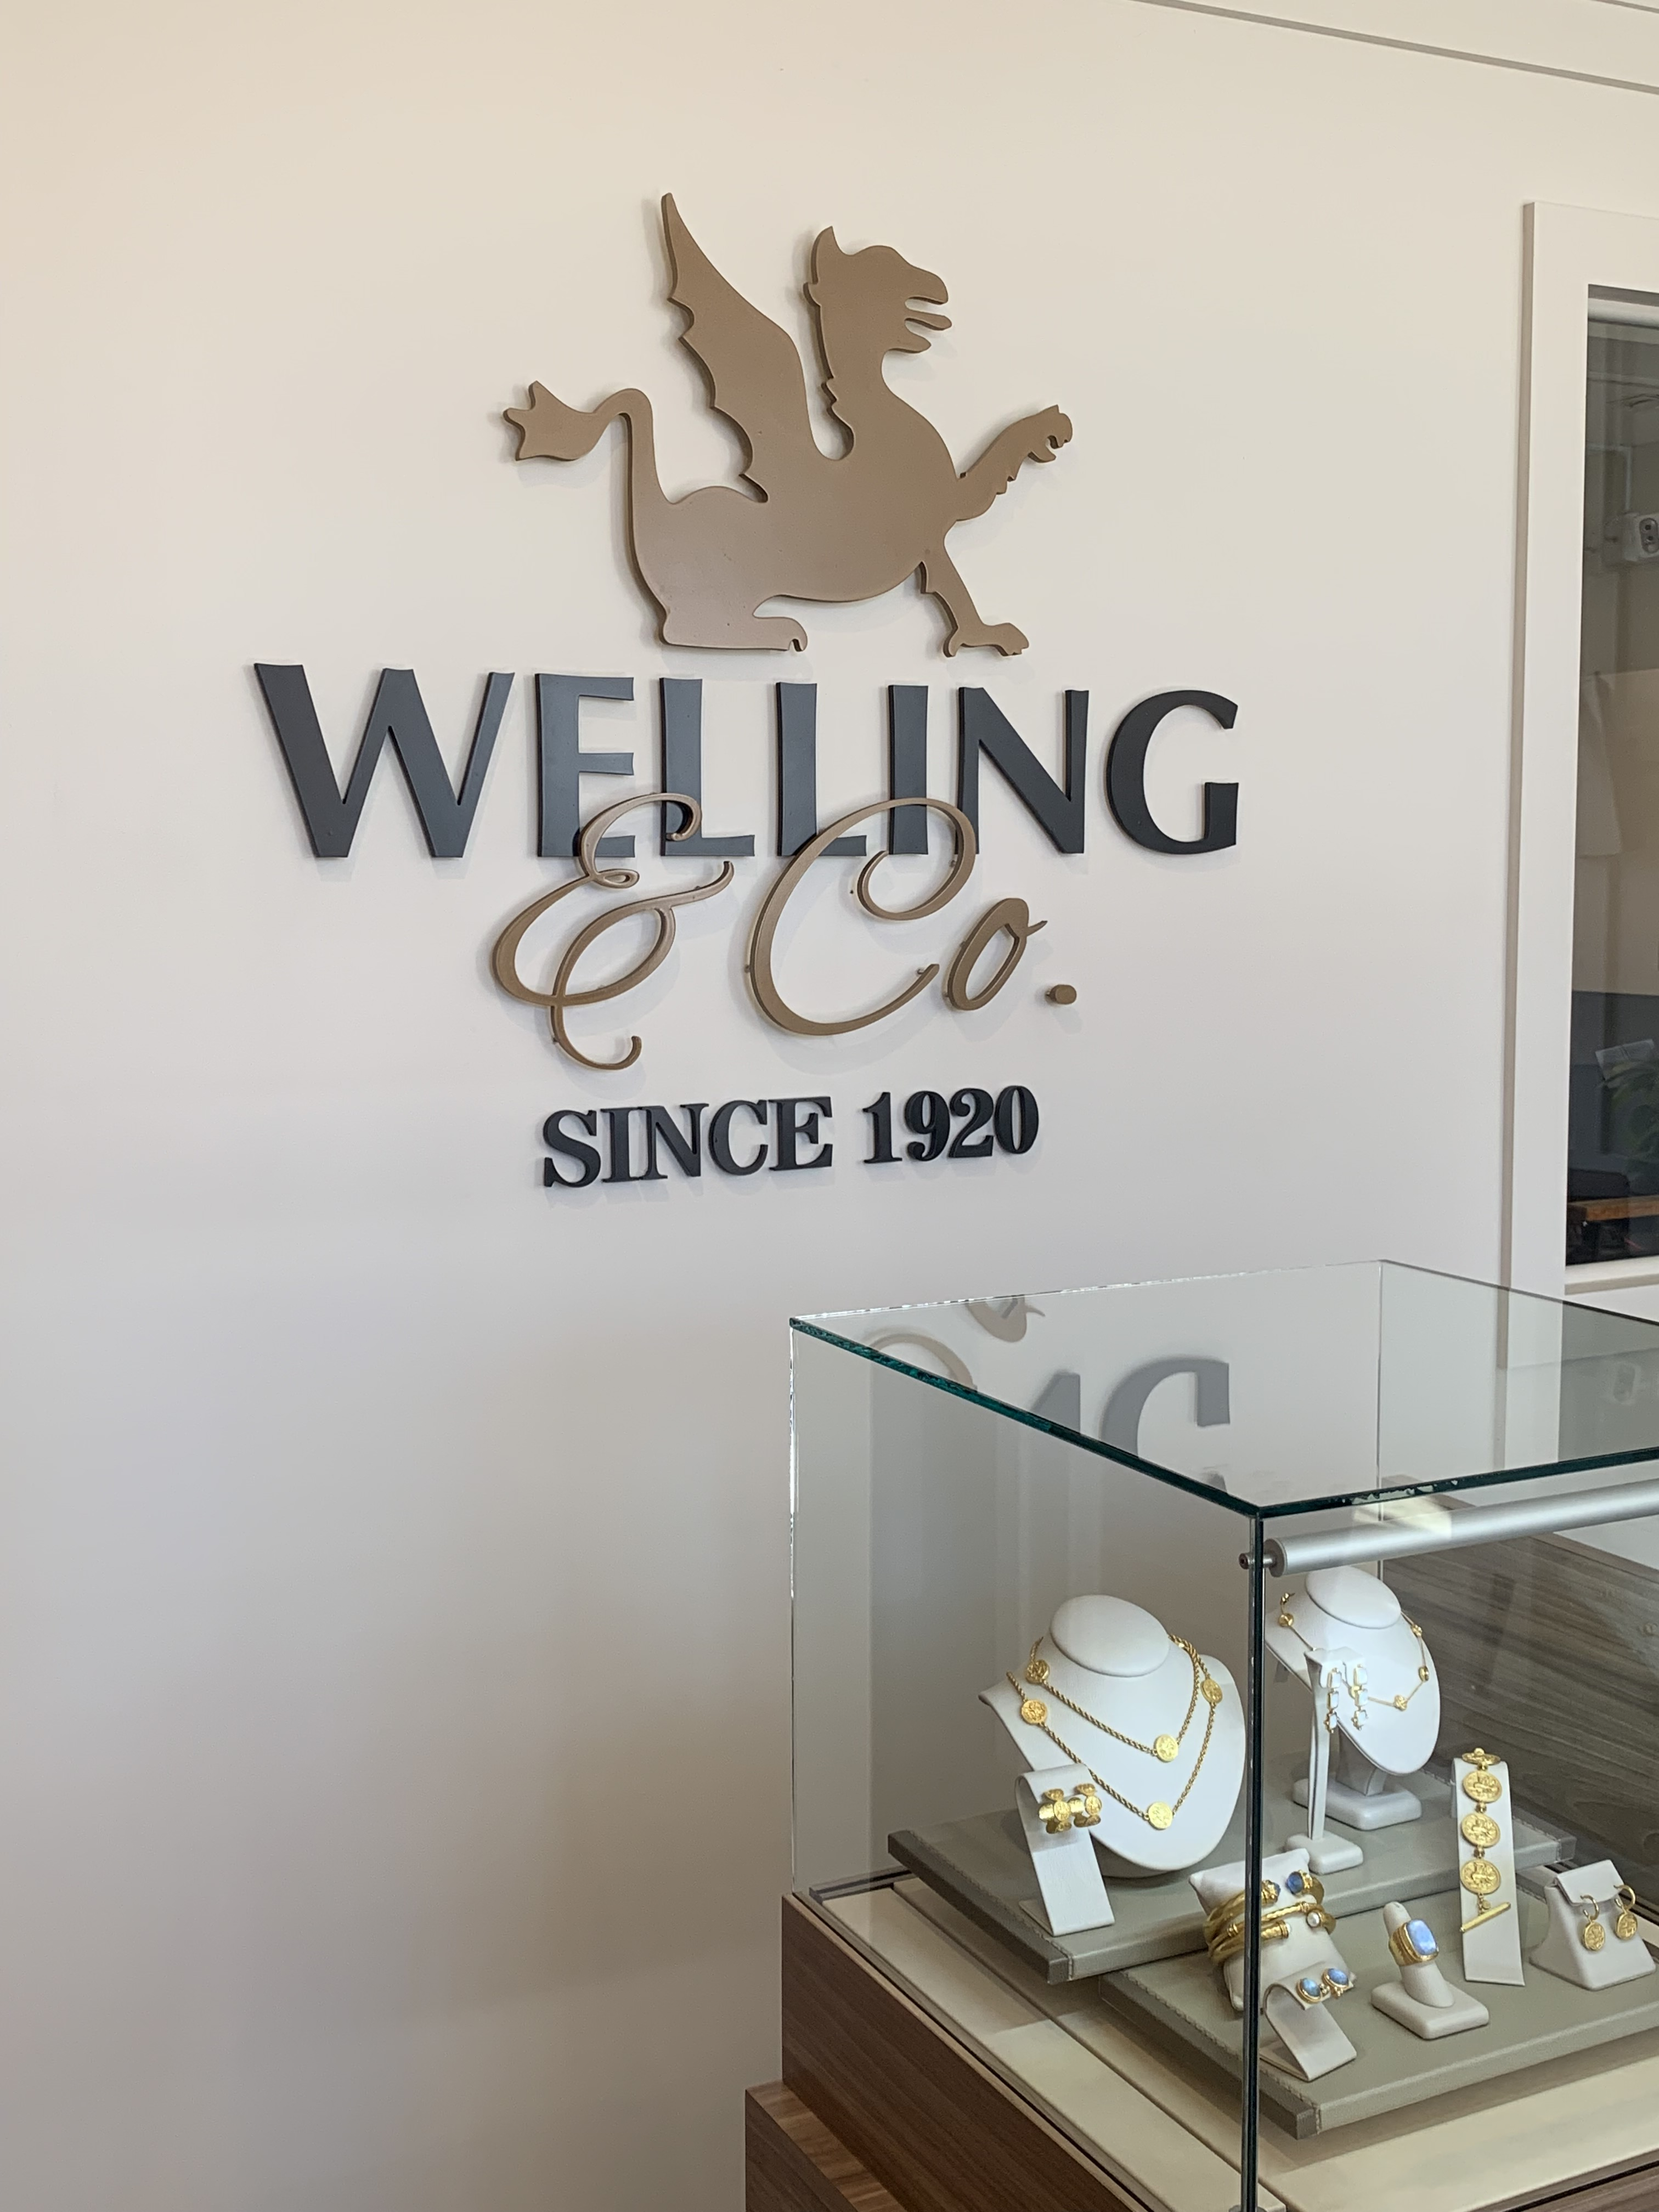 Welling & Co.